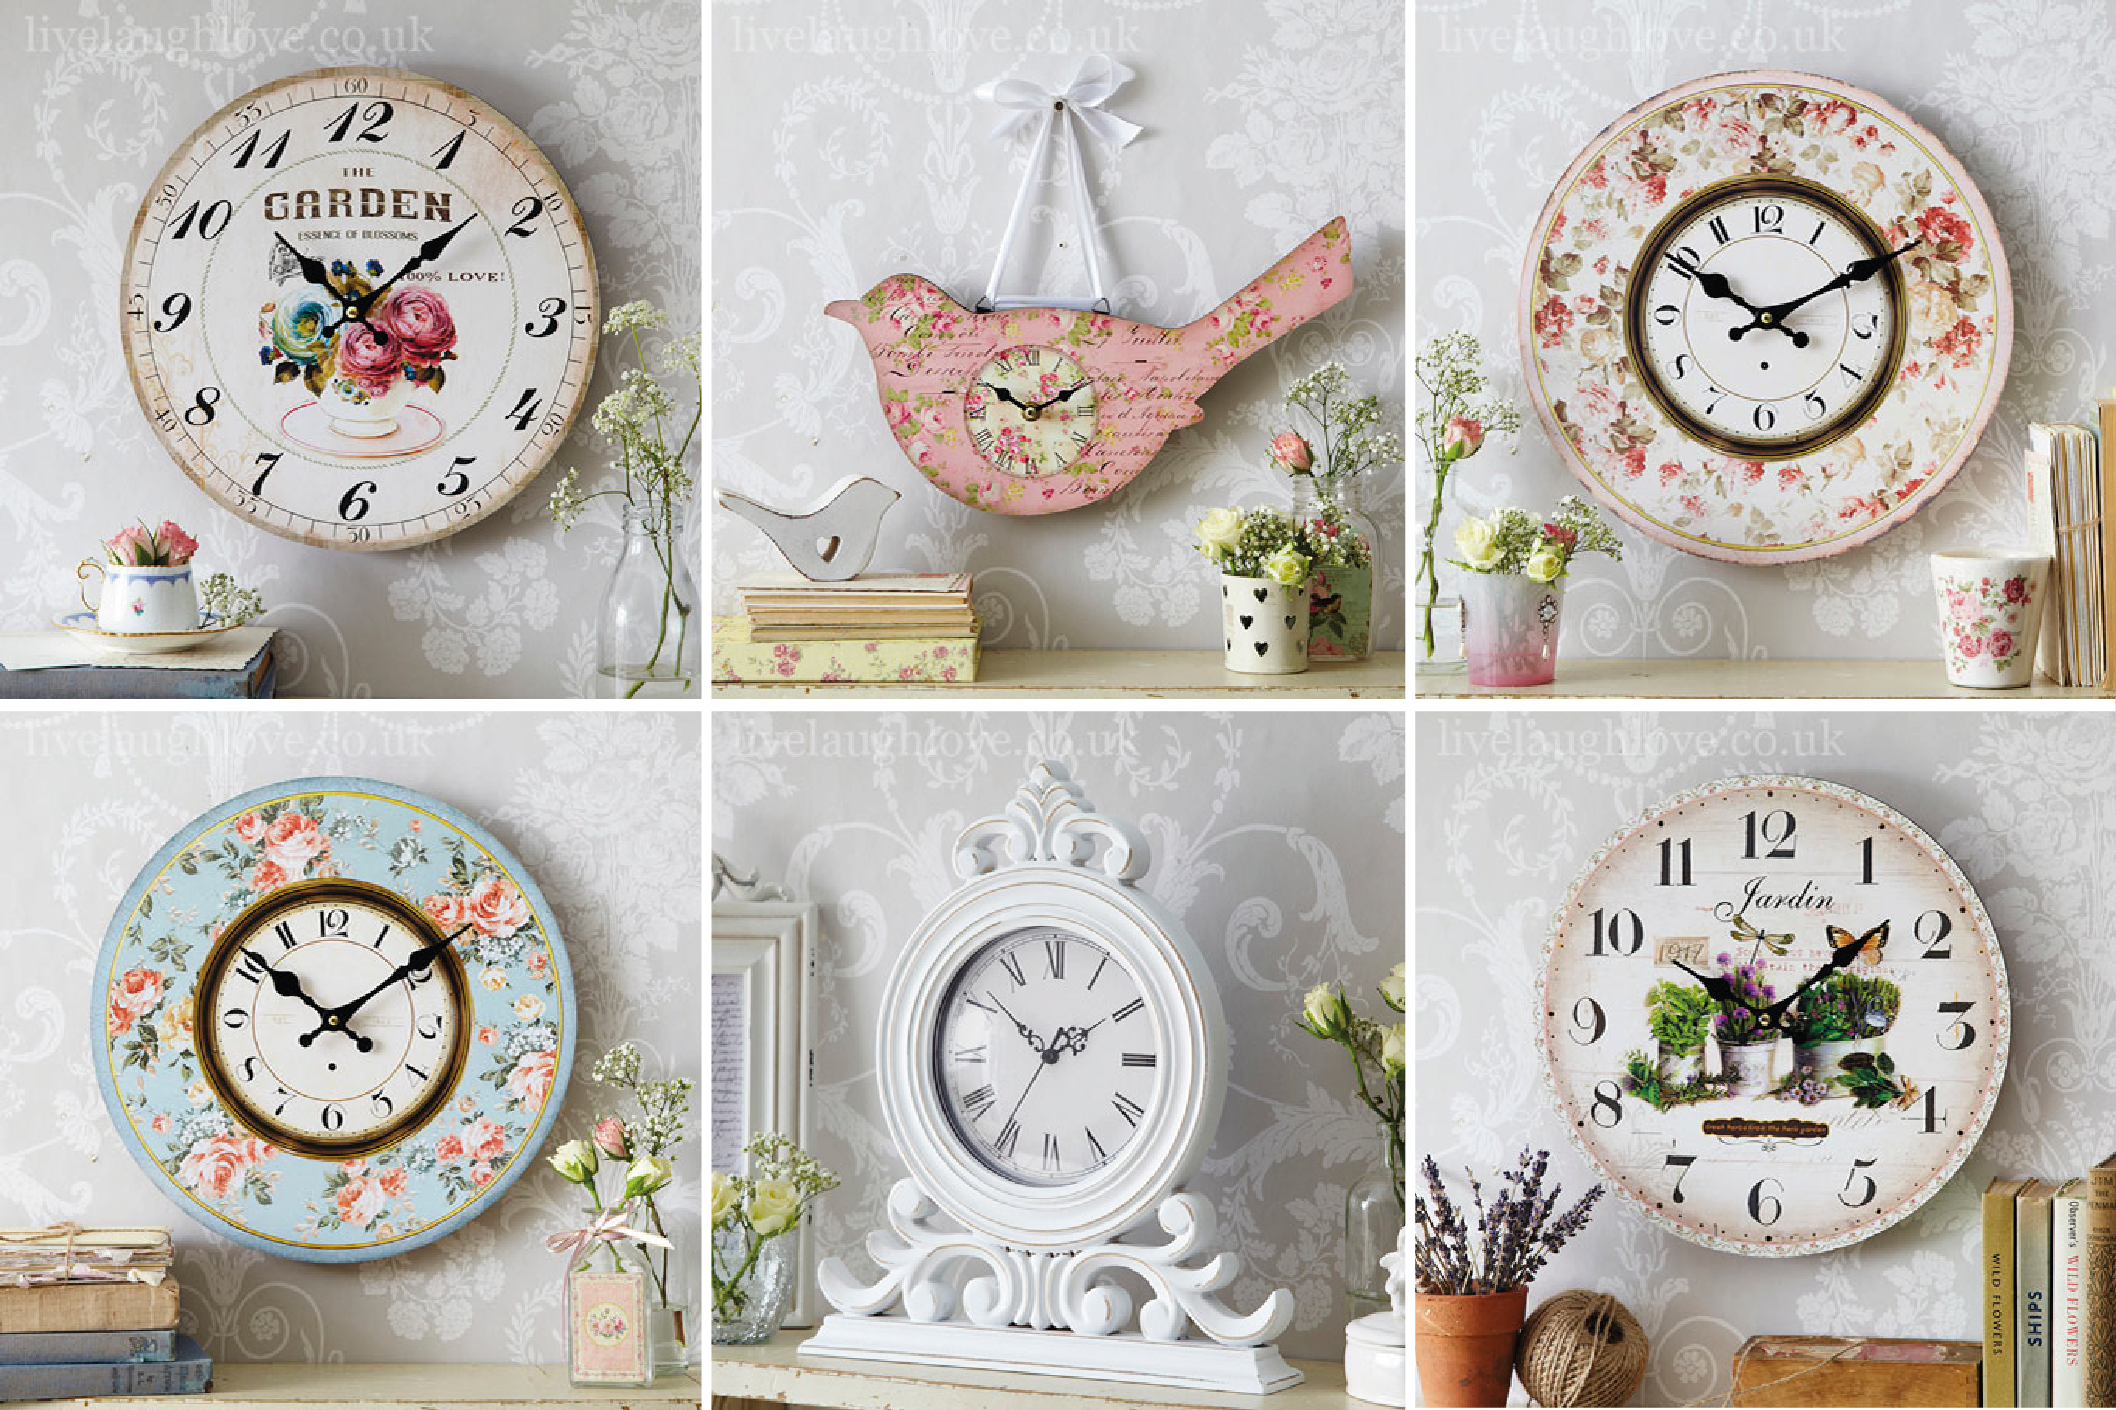 vintage home decor uk vintage home accessories uk 25 home ideas enhancedhomes org 11813